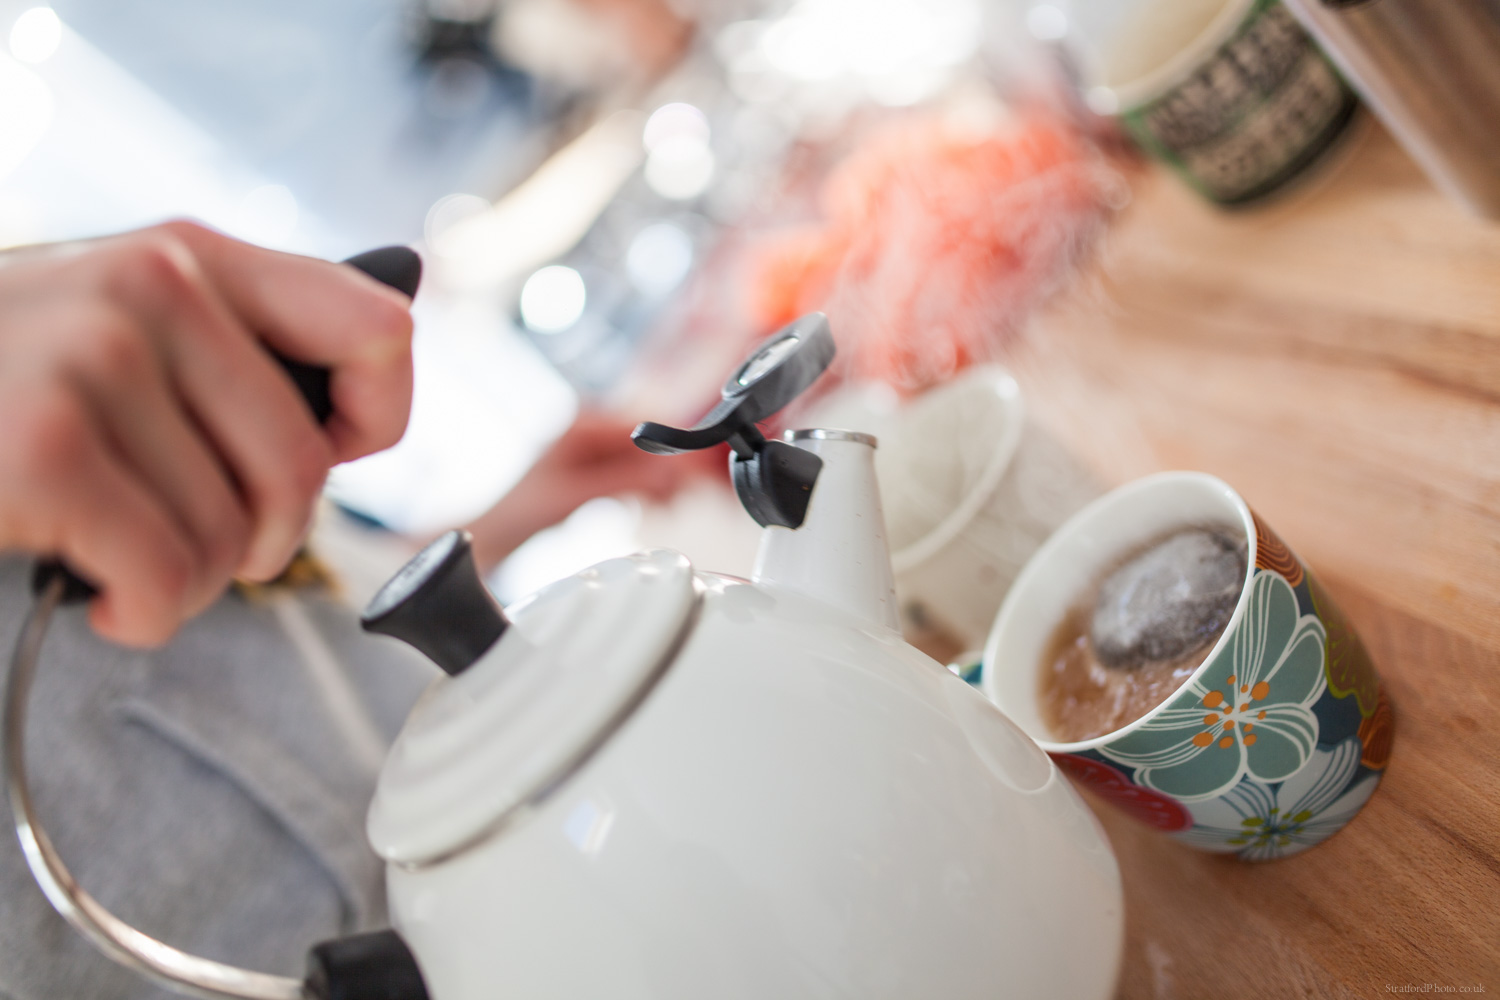 Tea is poured into a teacup from a teapot